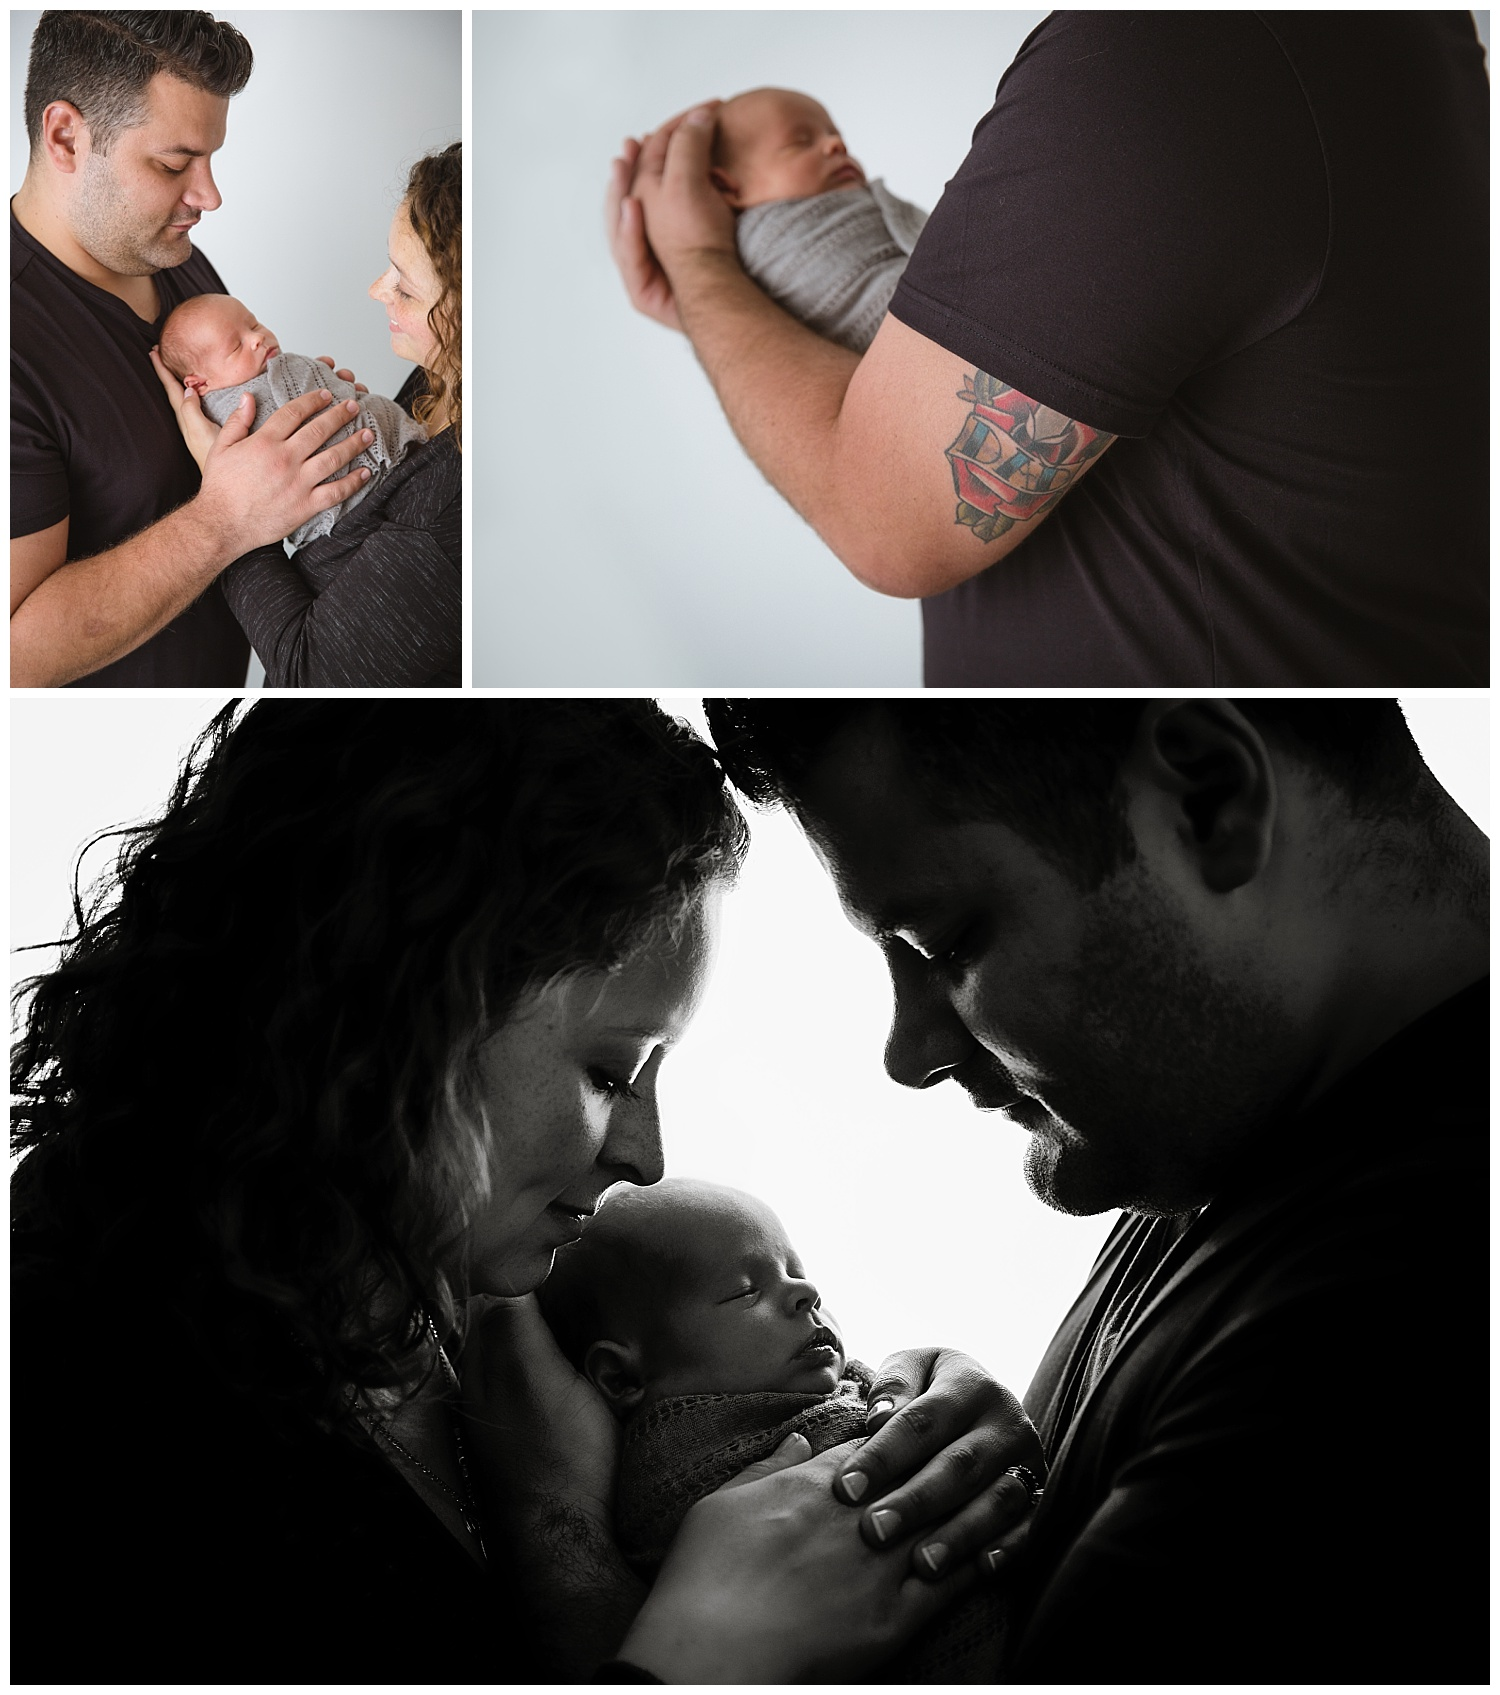 dad holding his newborn baby boy named chris and his dad tattoo with a black andwhite portrait of mom and dad in moorestown new jersey photo studio